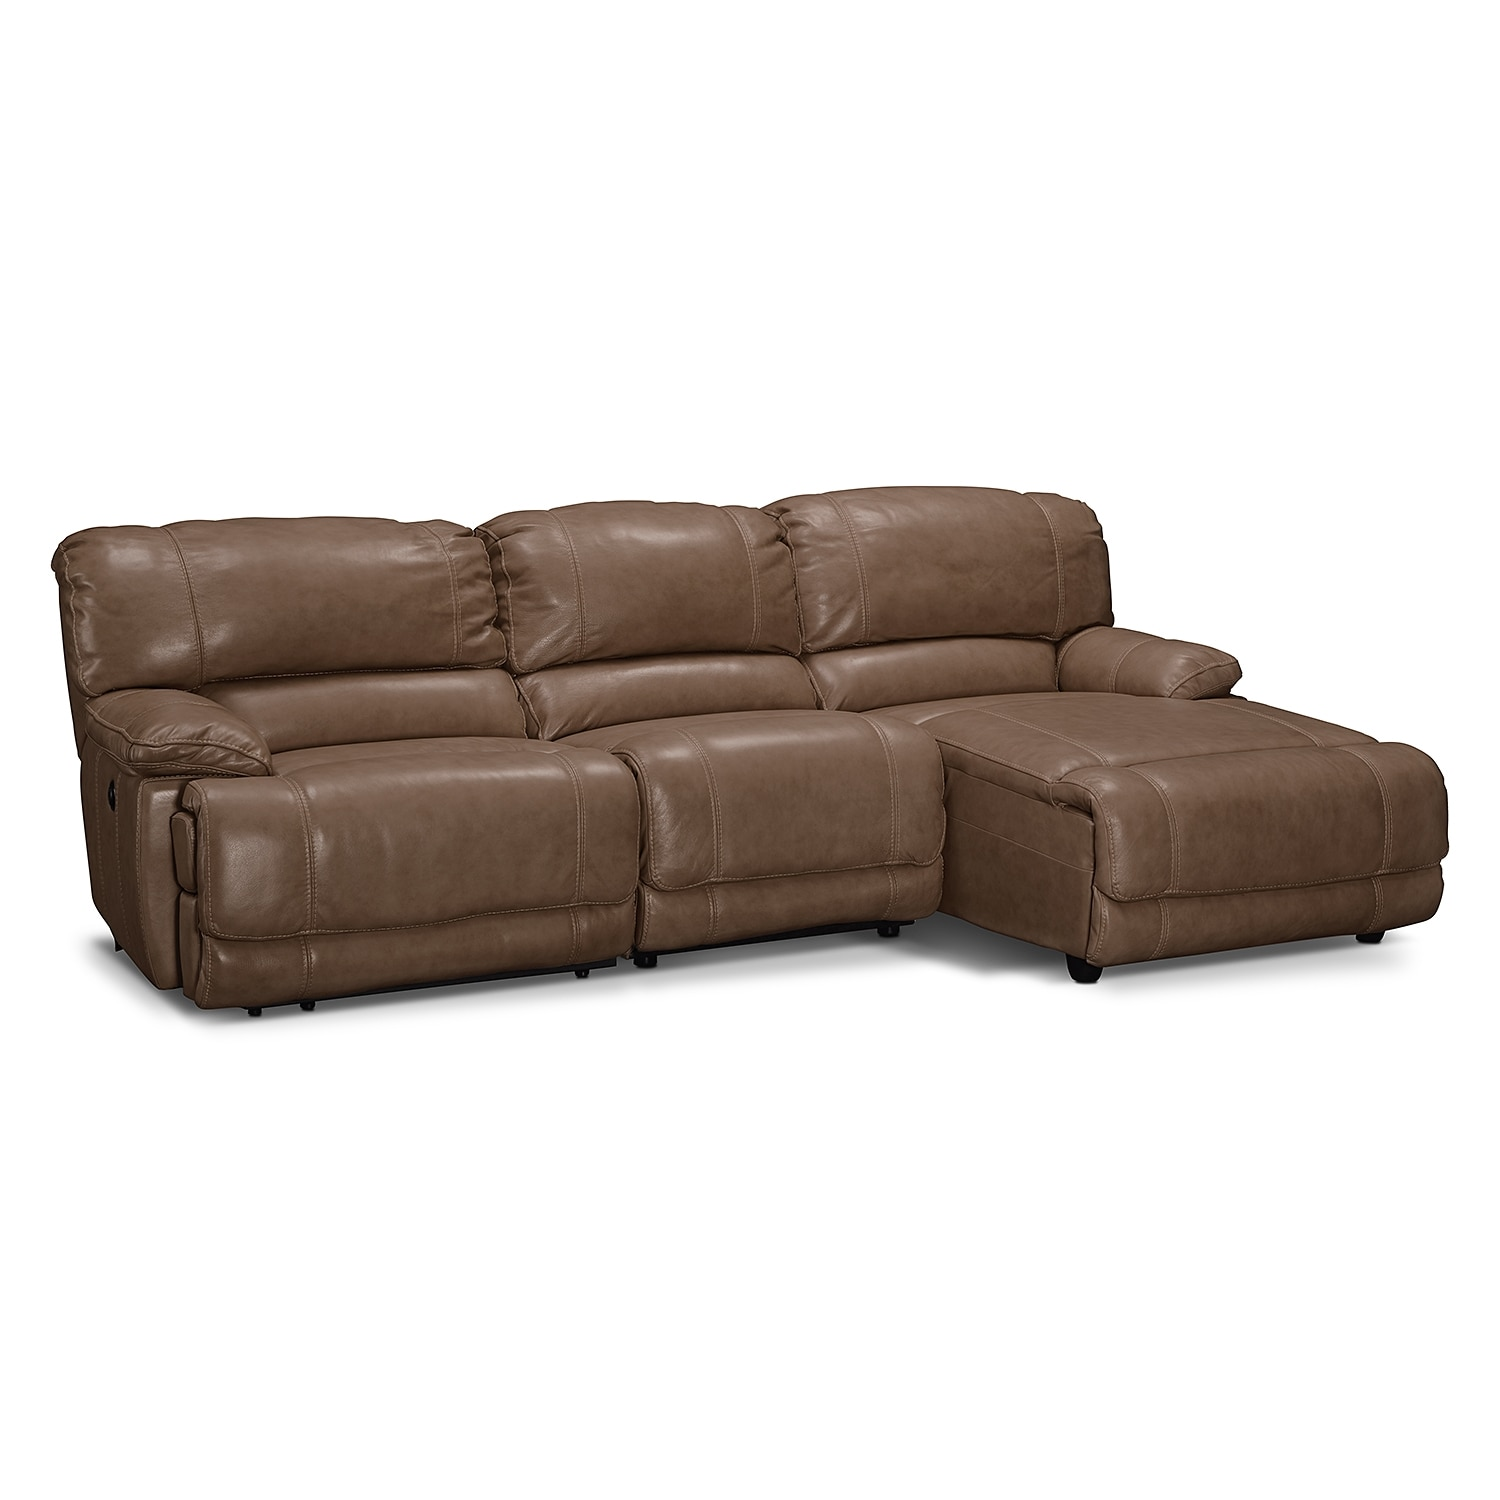 St malo 3 piece power reclining sectional with right for 3 piece sectional with chaise